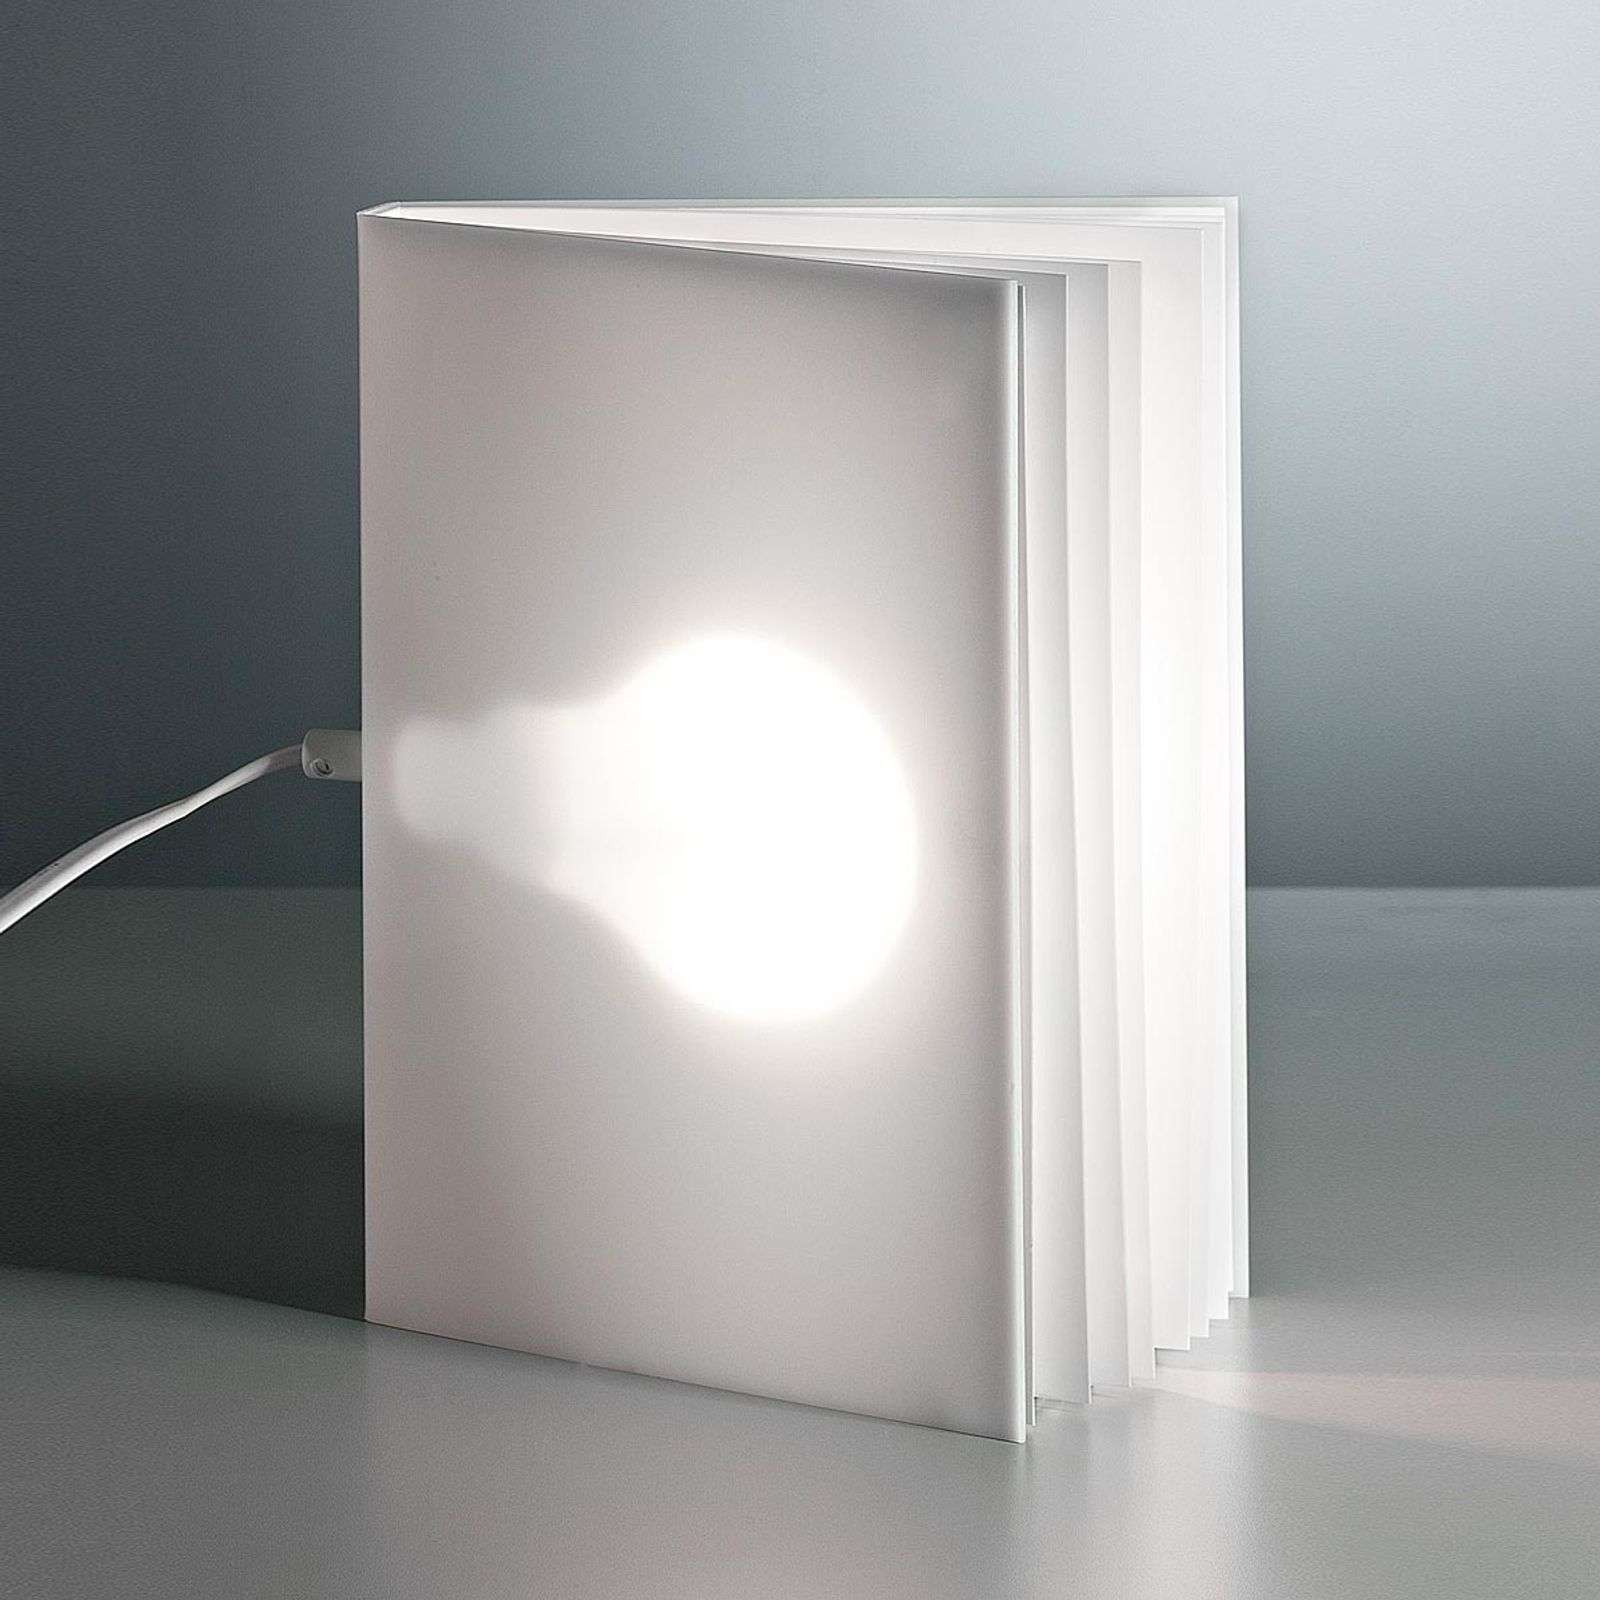 TECNOLUMEN BookLight tafellamp van Vincenz Warnke